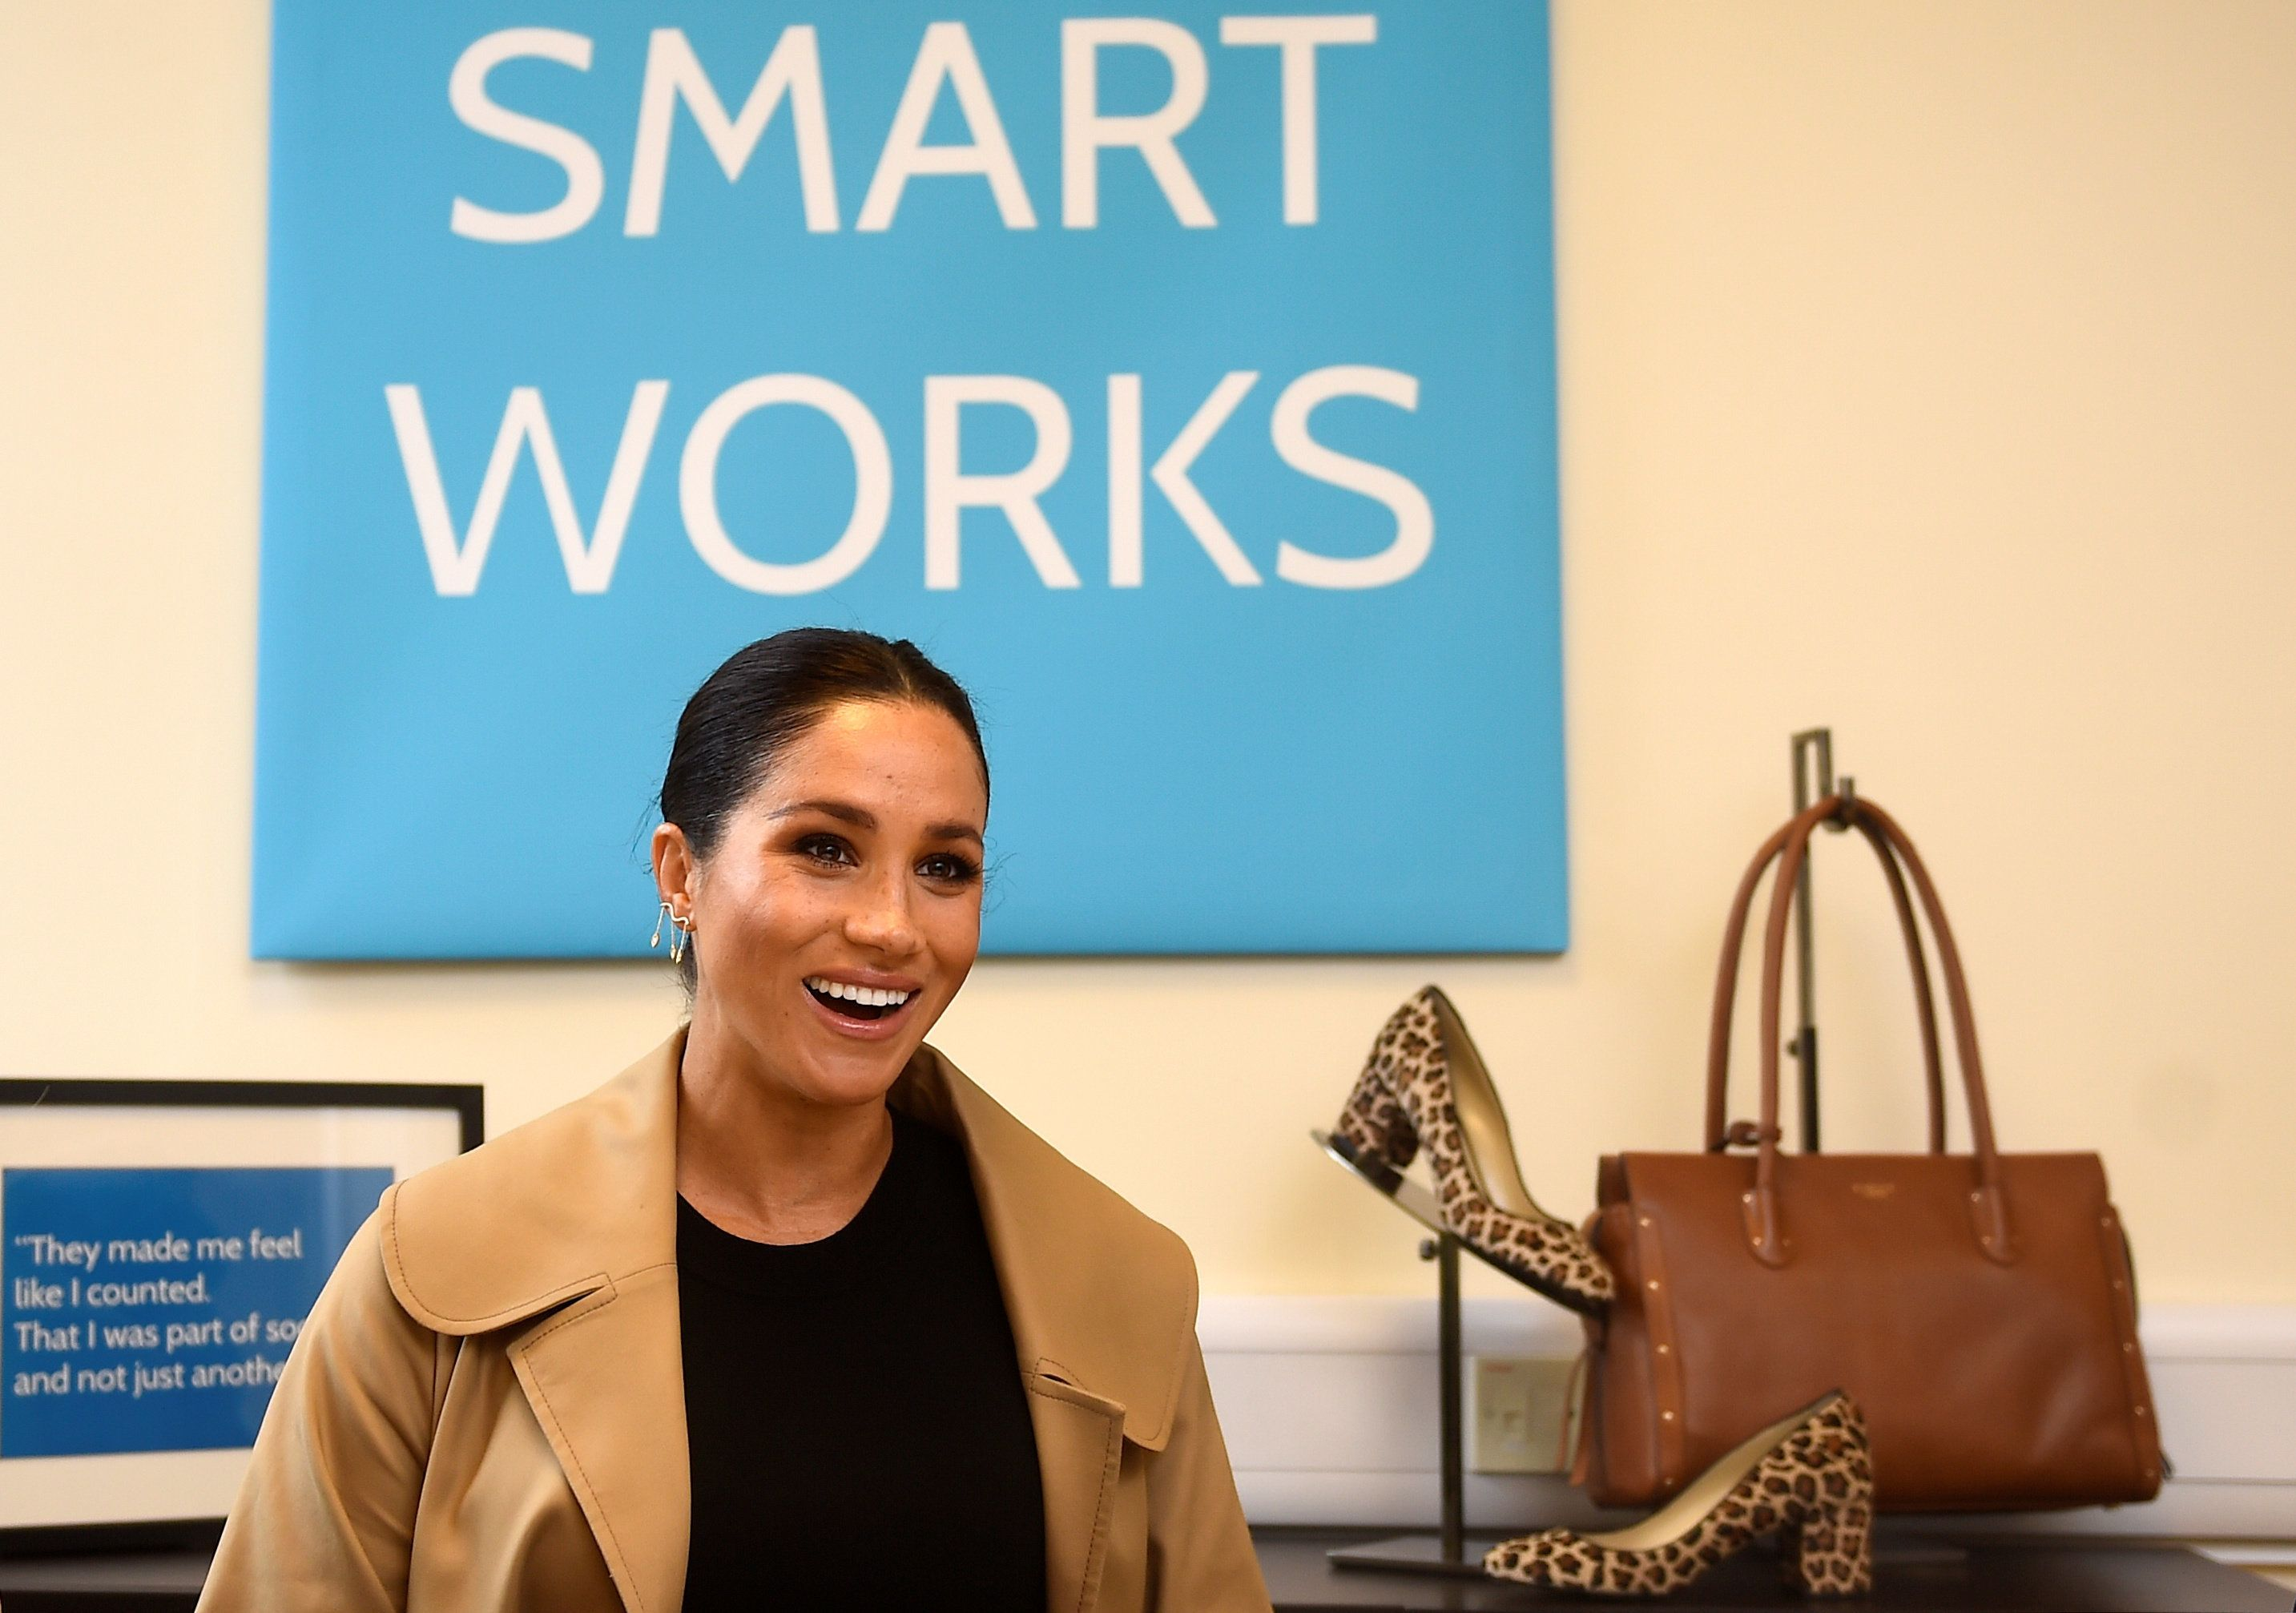 Meghan, the Duchess of Sussex, smiles during her visit at Smart Works charity in West London on Jan. 10.